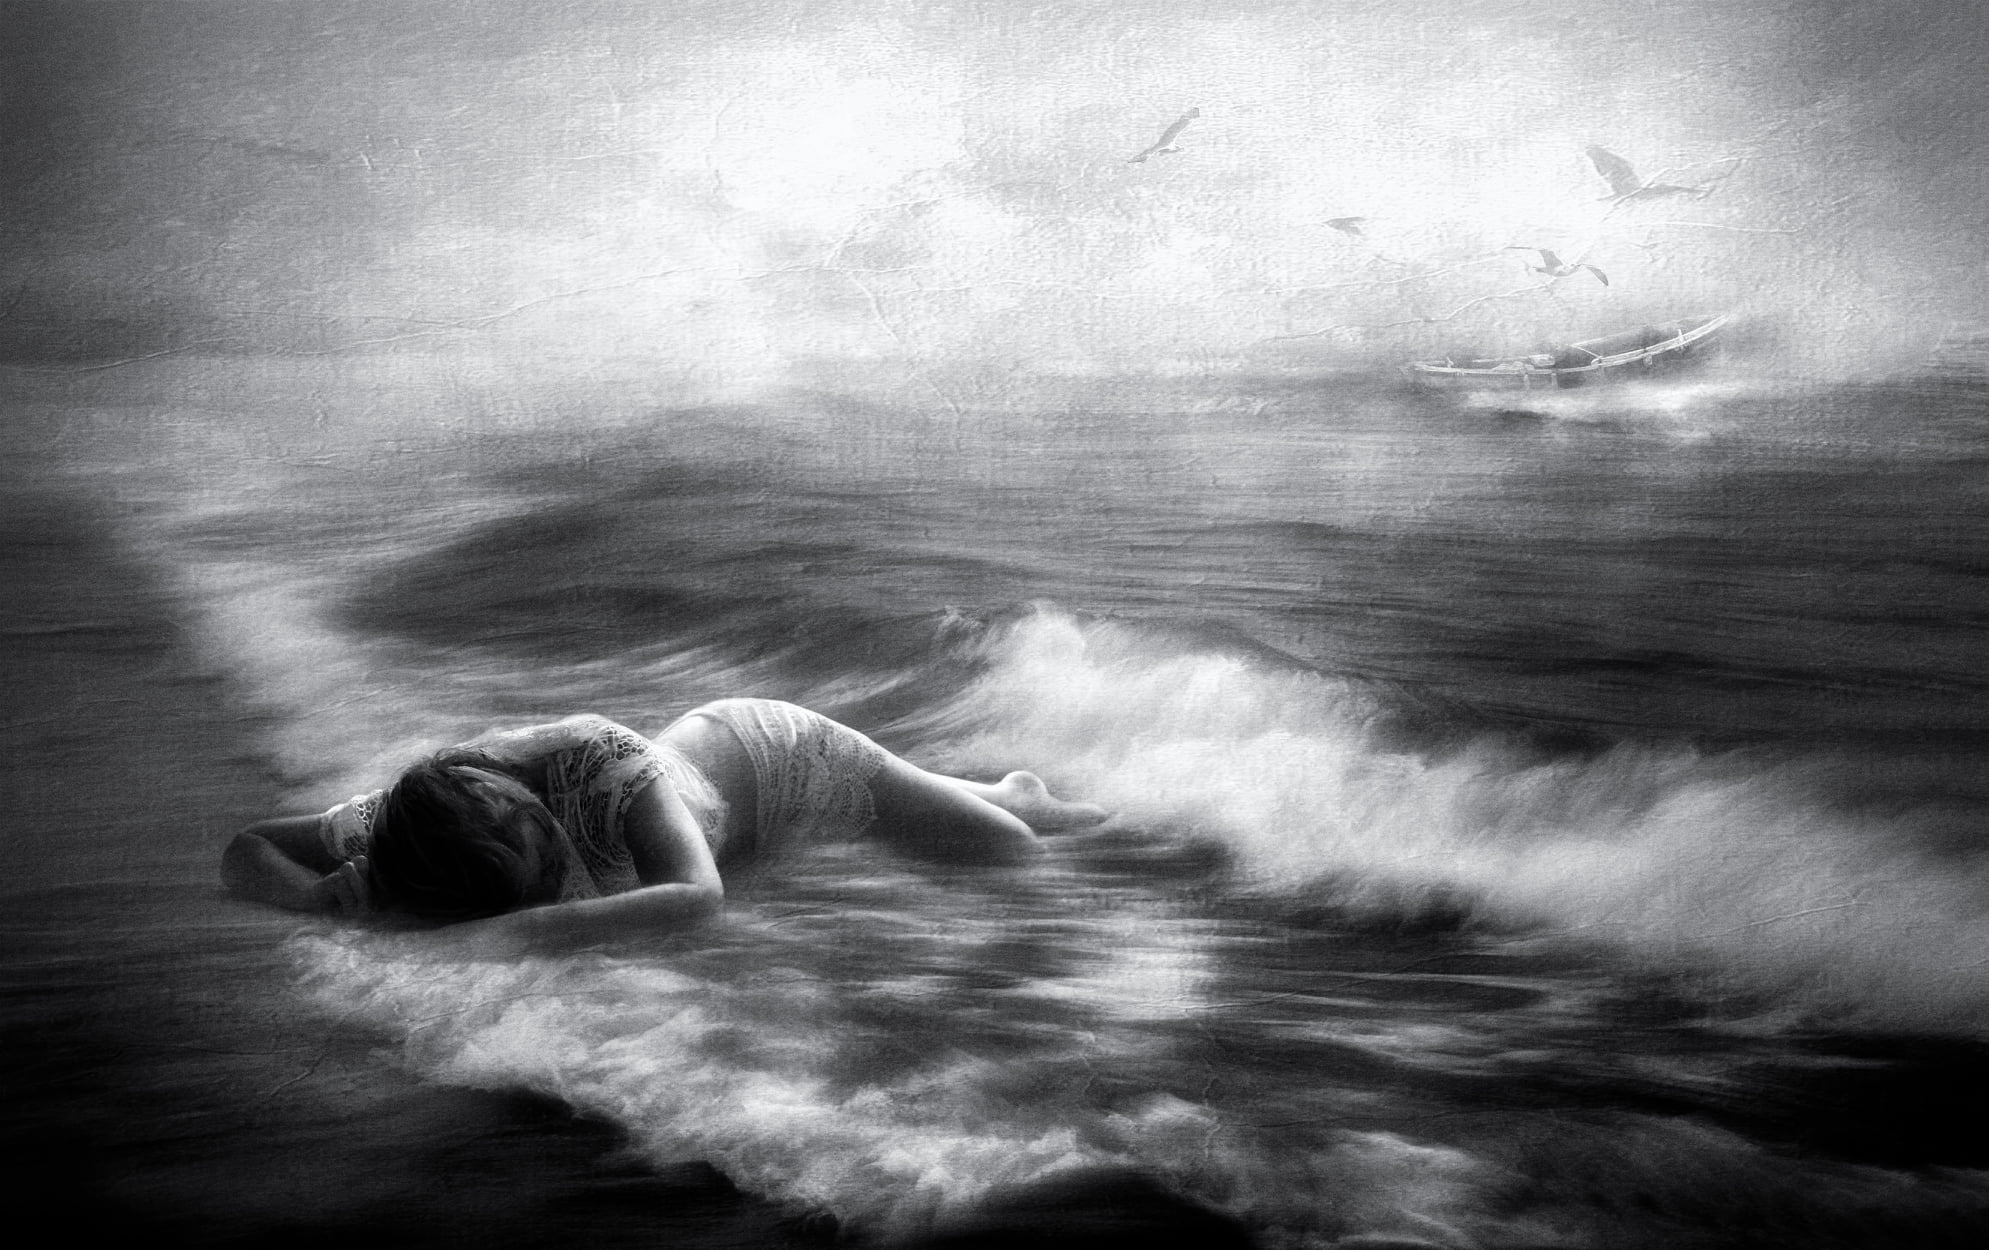 Charlaine Gerber- Such a long fall, washed out to sea